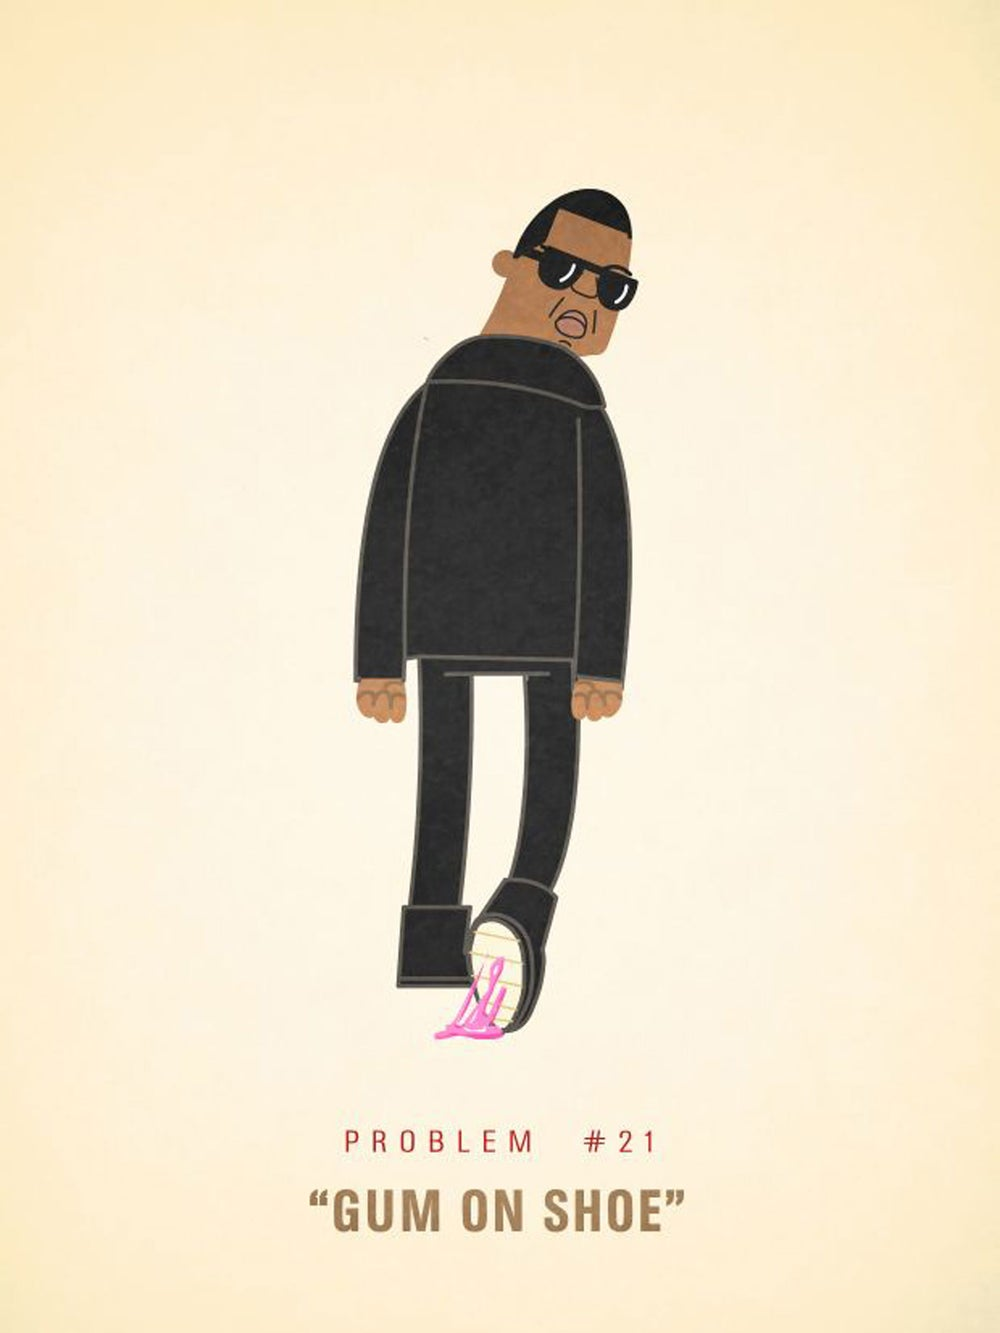 Jay Zs 99 Problems Now Include Tumblr Cartoons And Six Hour Rap